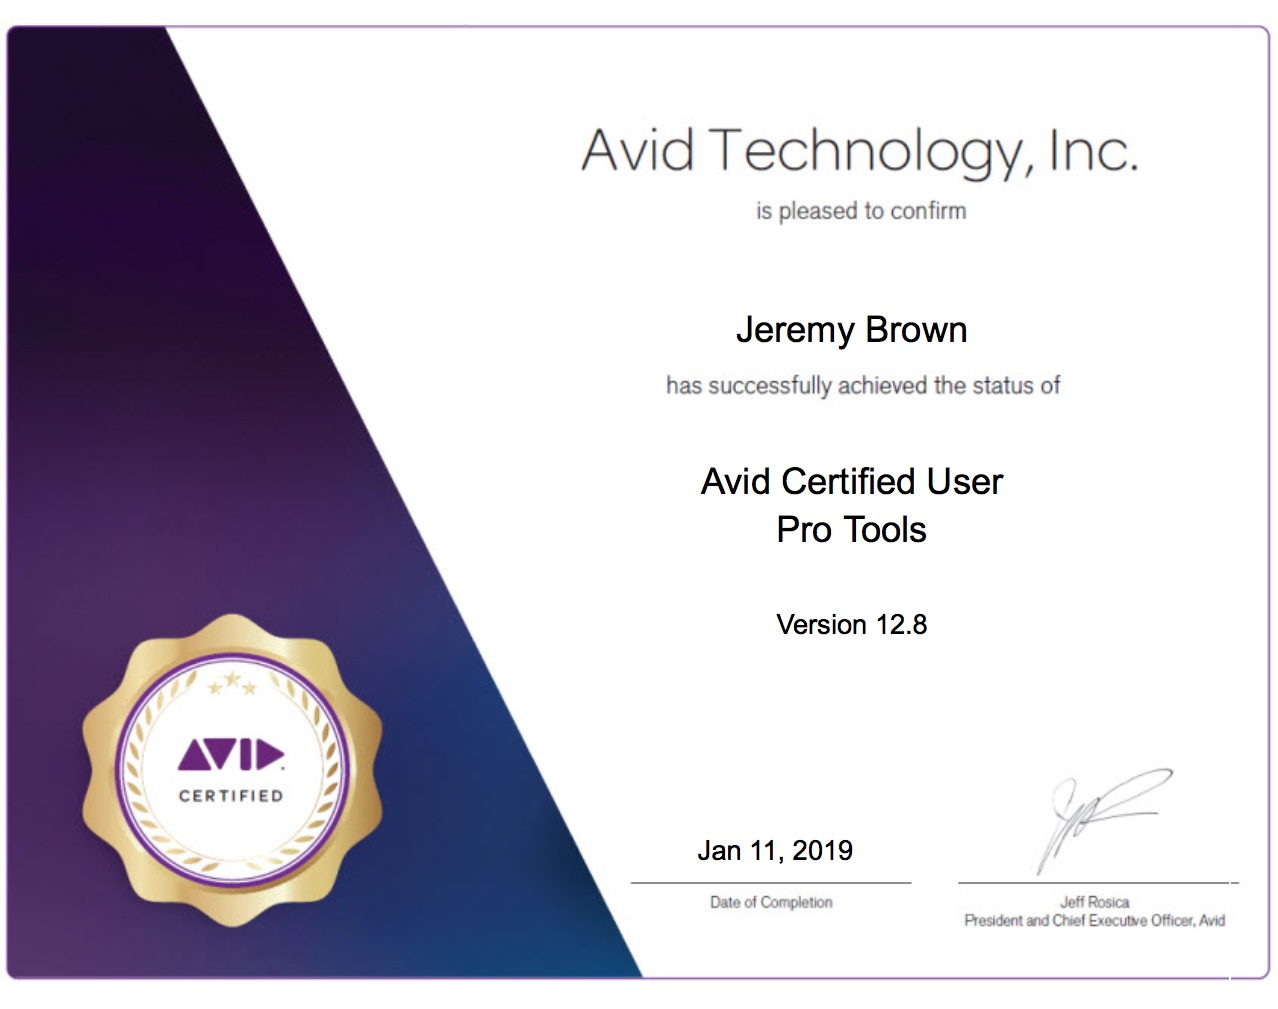 Avid Certification Picture.png